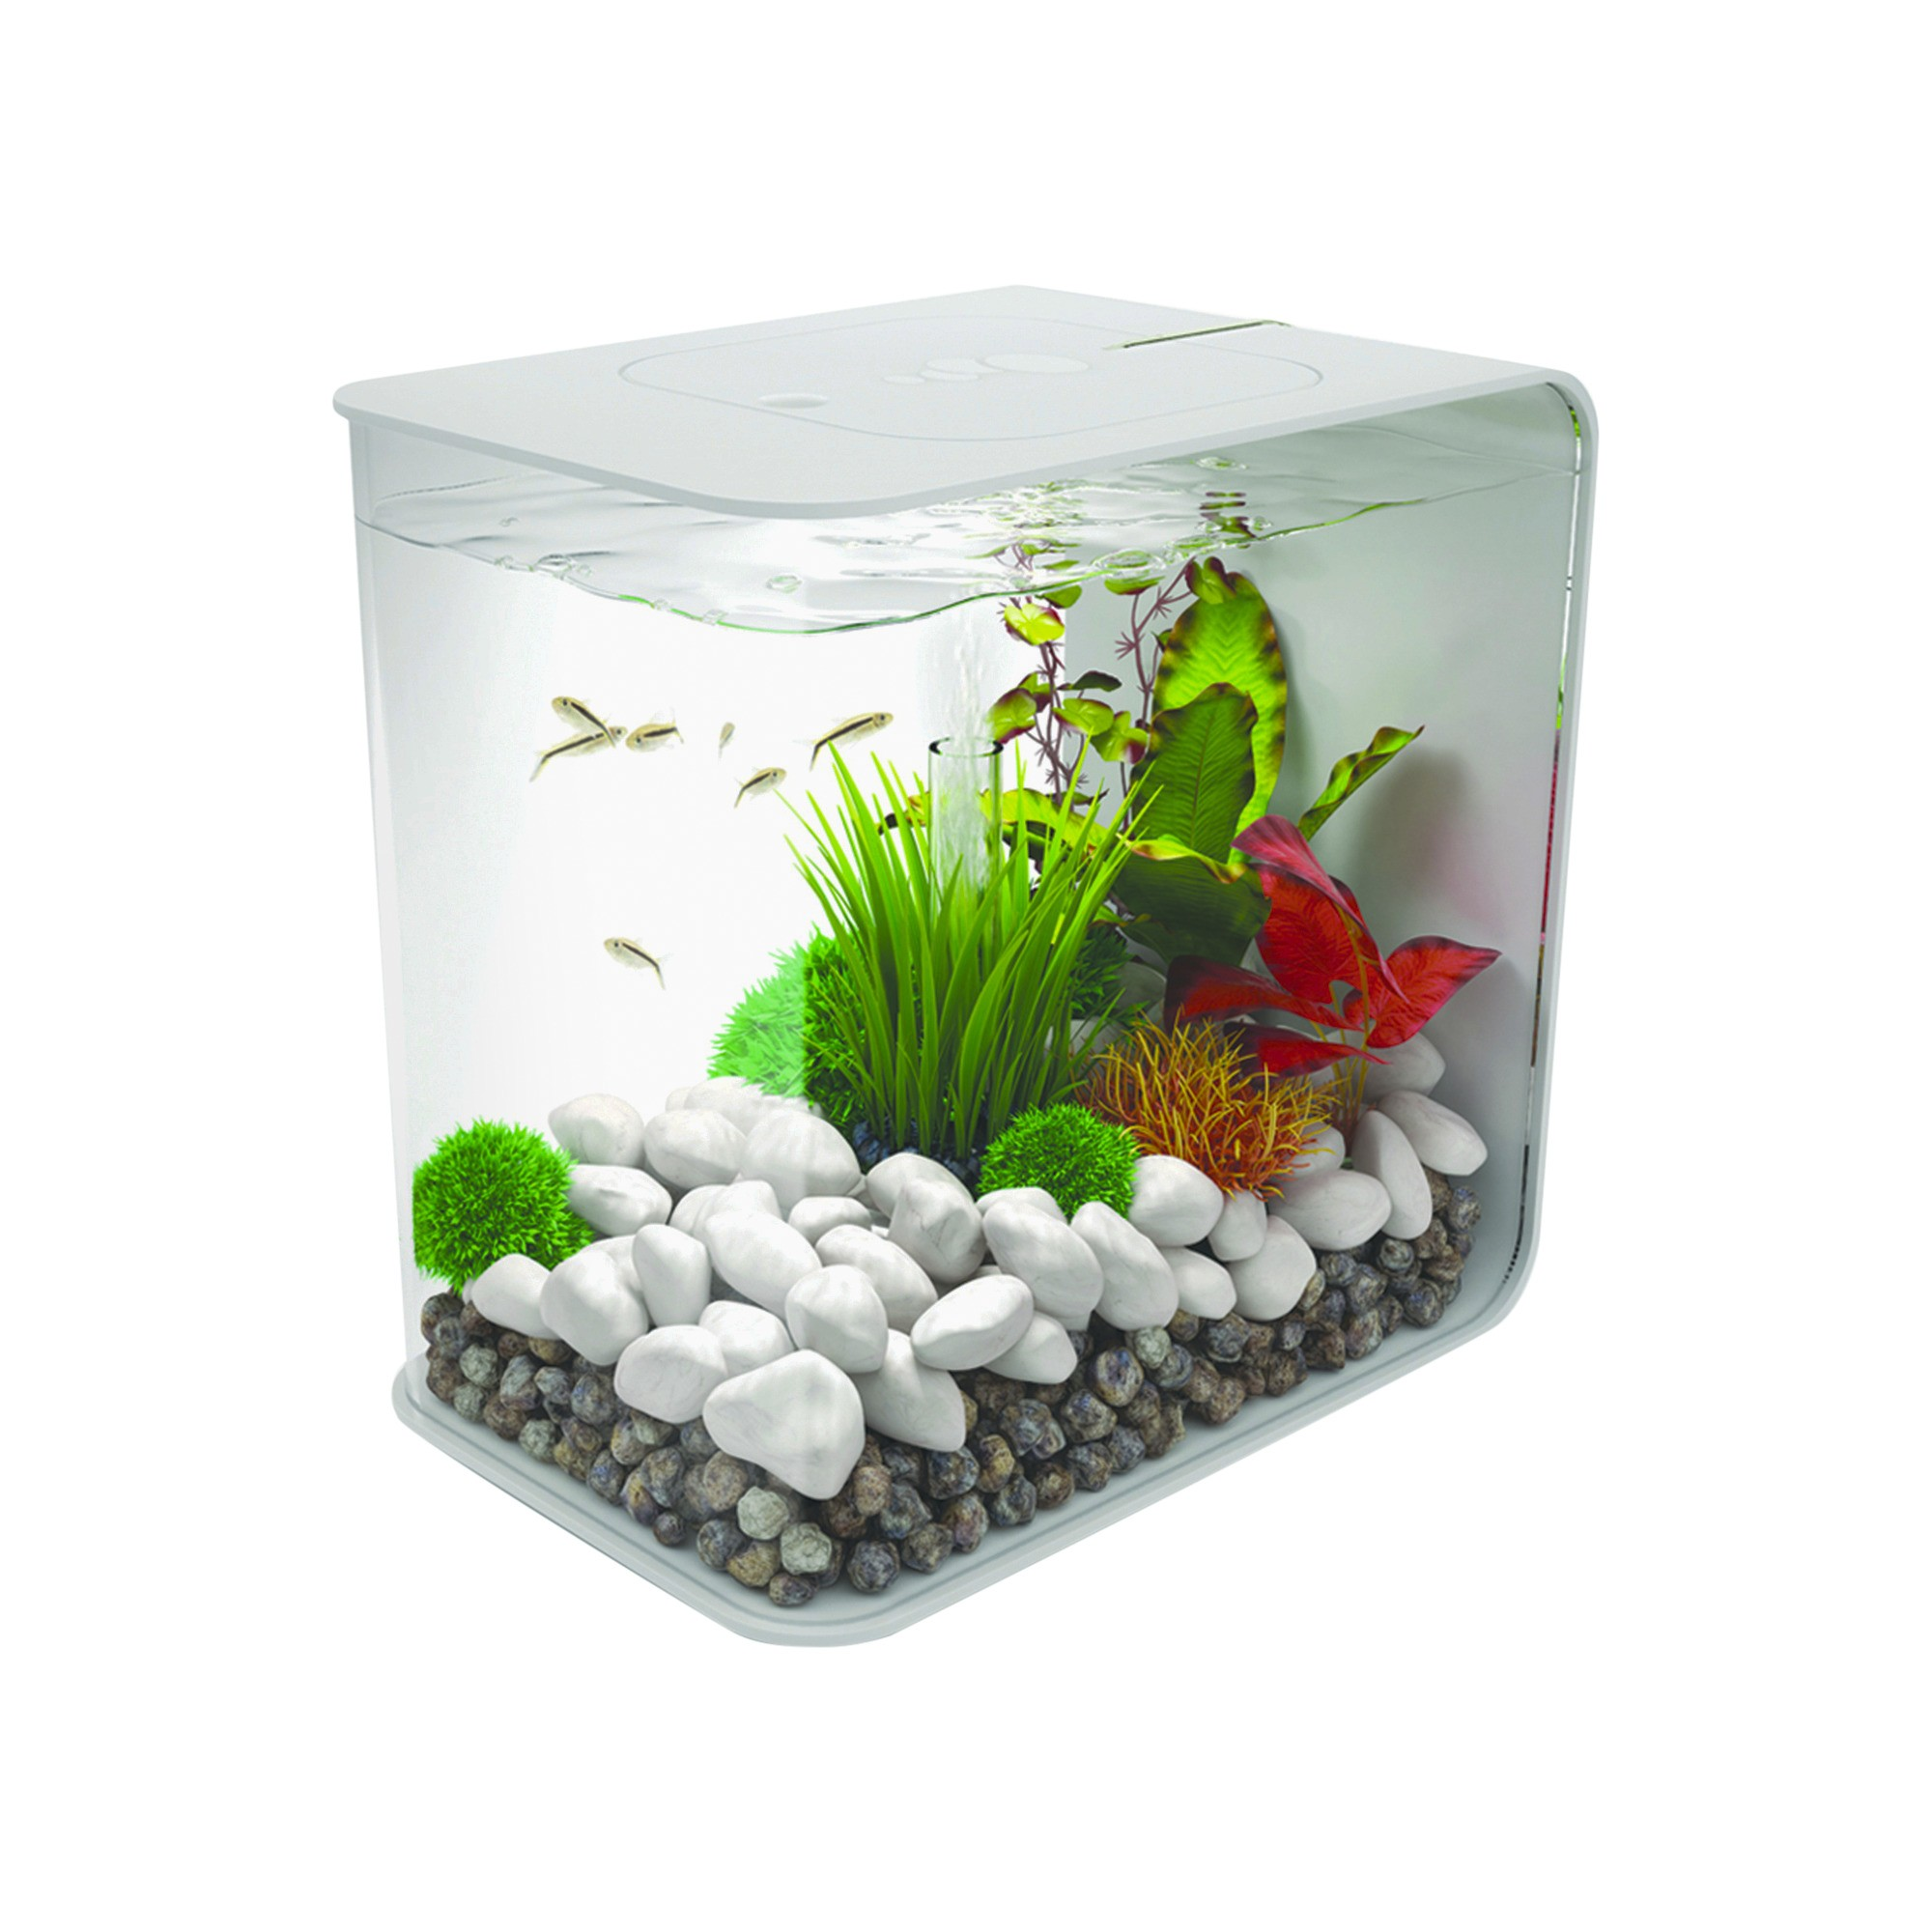 biOrb Flow 15 with Led Lights Aquarium White